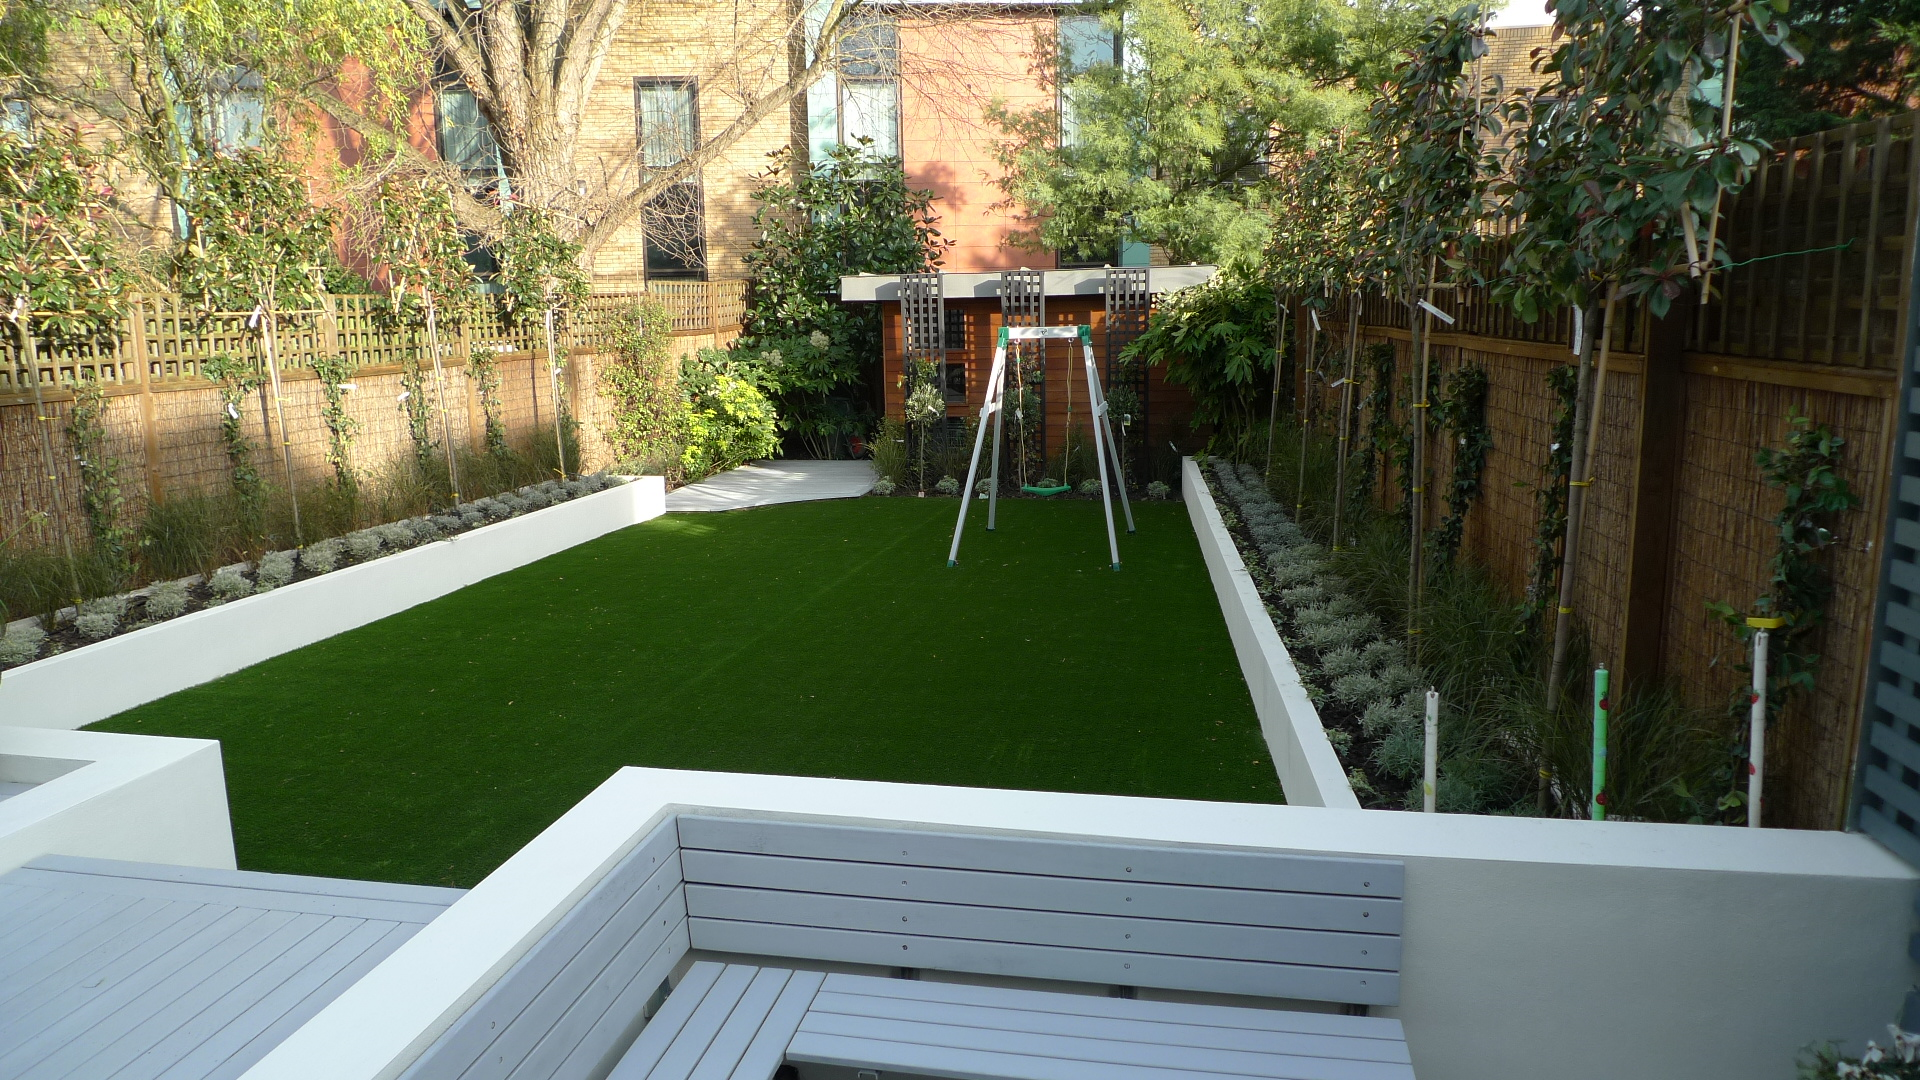 Modern garden design ideas london london garden design for Best garden ideas